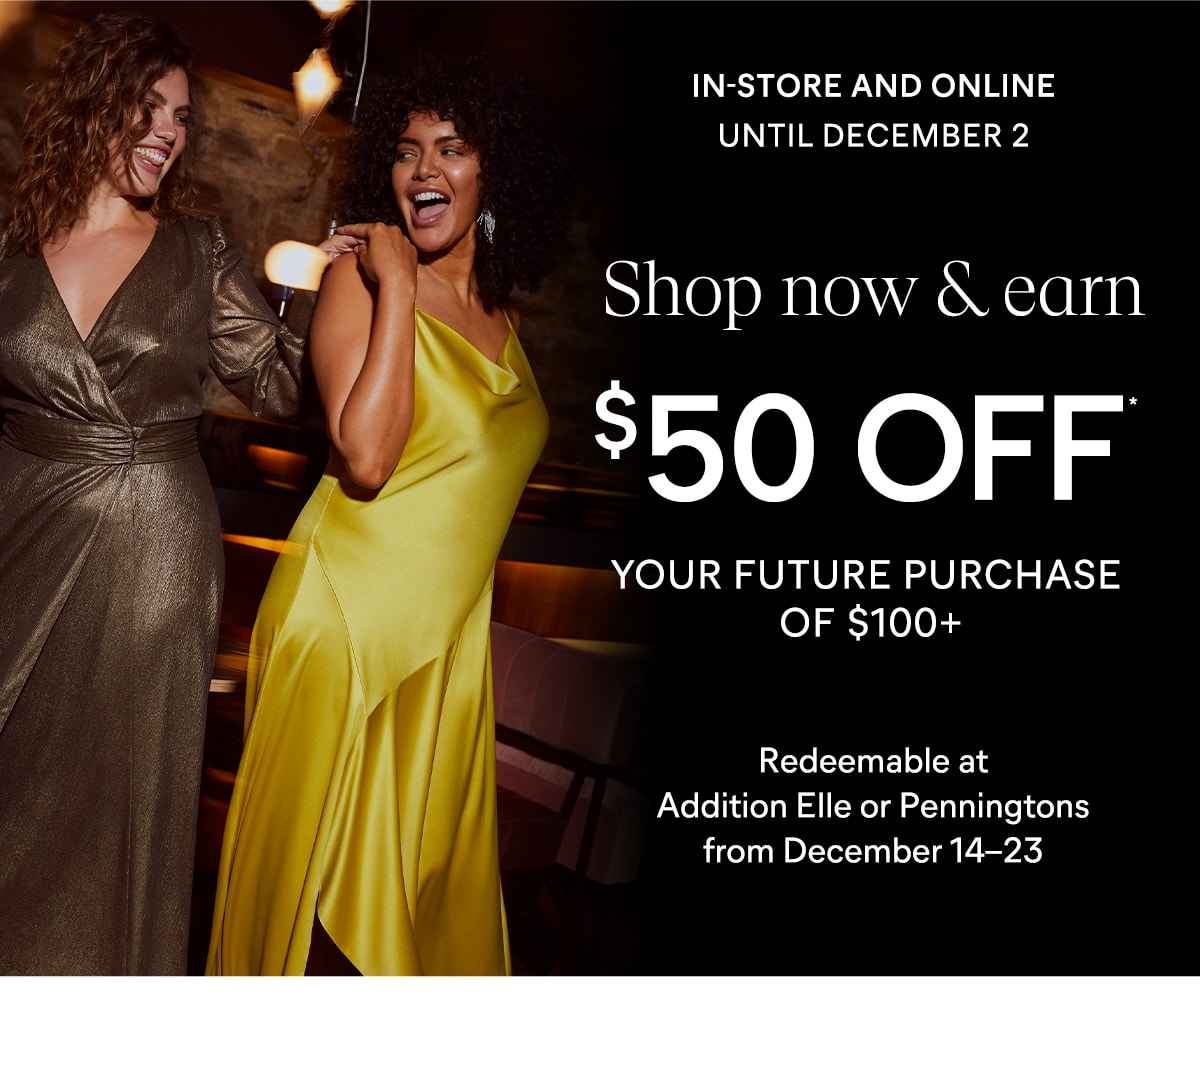 $50 off your future purchase of $100+